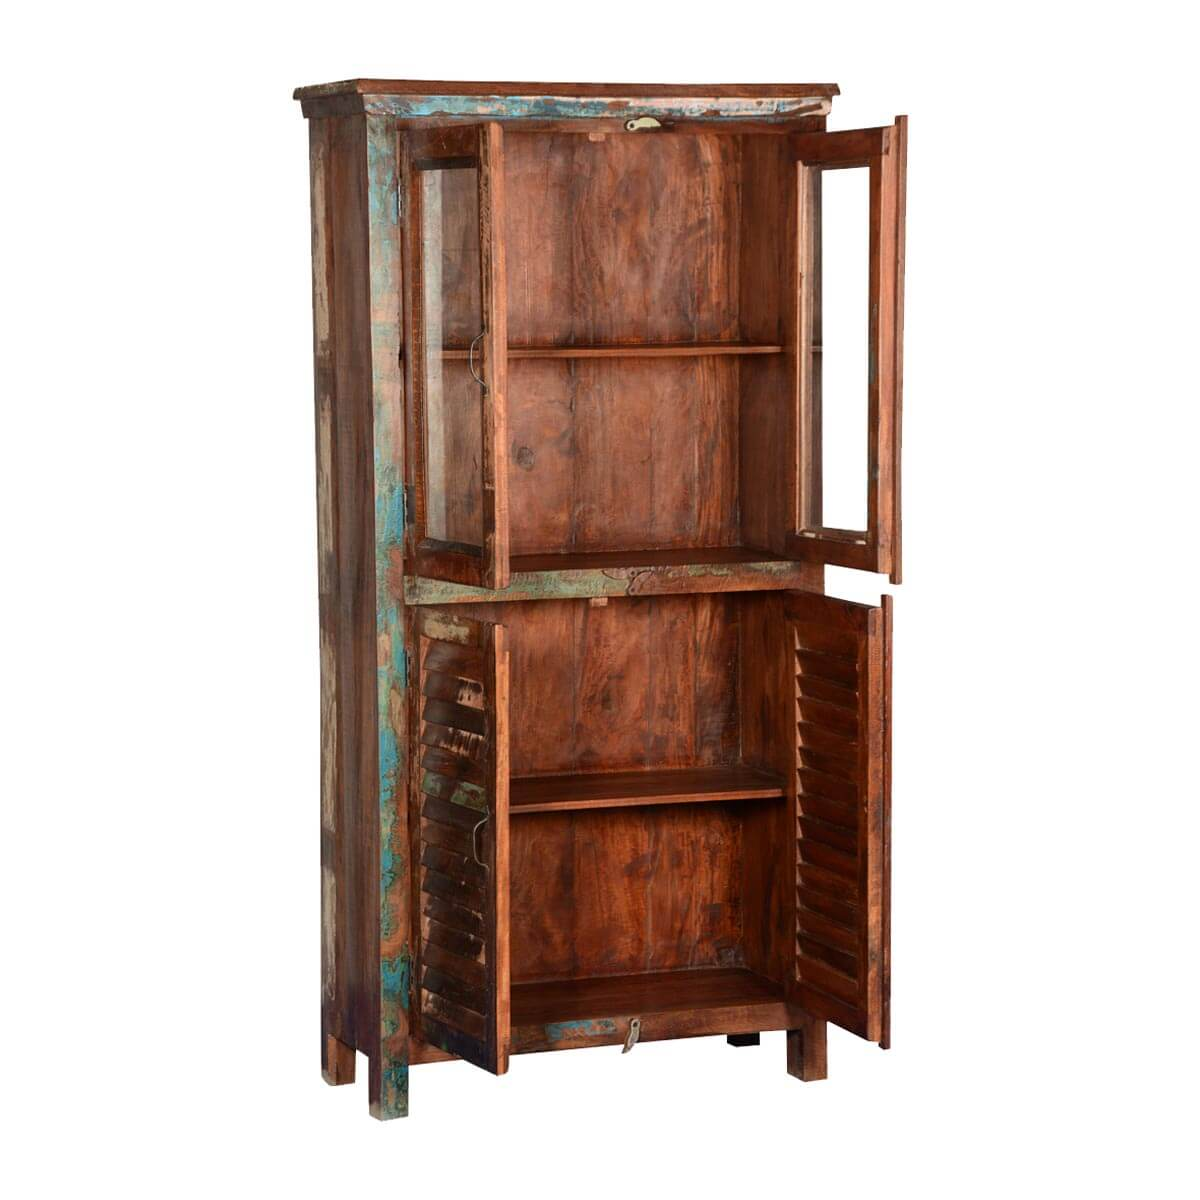 Rustic Farmhouse Reclaimed Wood Shutter Door amp Display Cabinet : 67236 from www.sierralivingconcepts.com size 1200 x 1200 jpeg 134kB